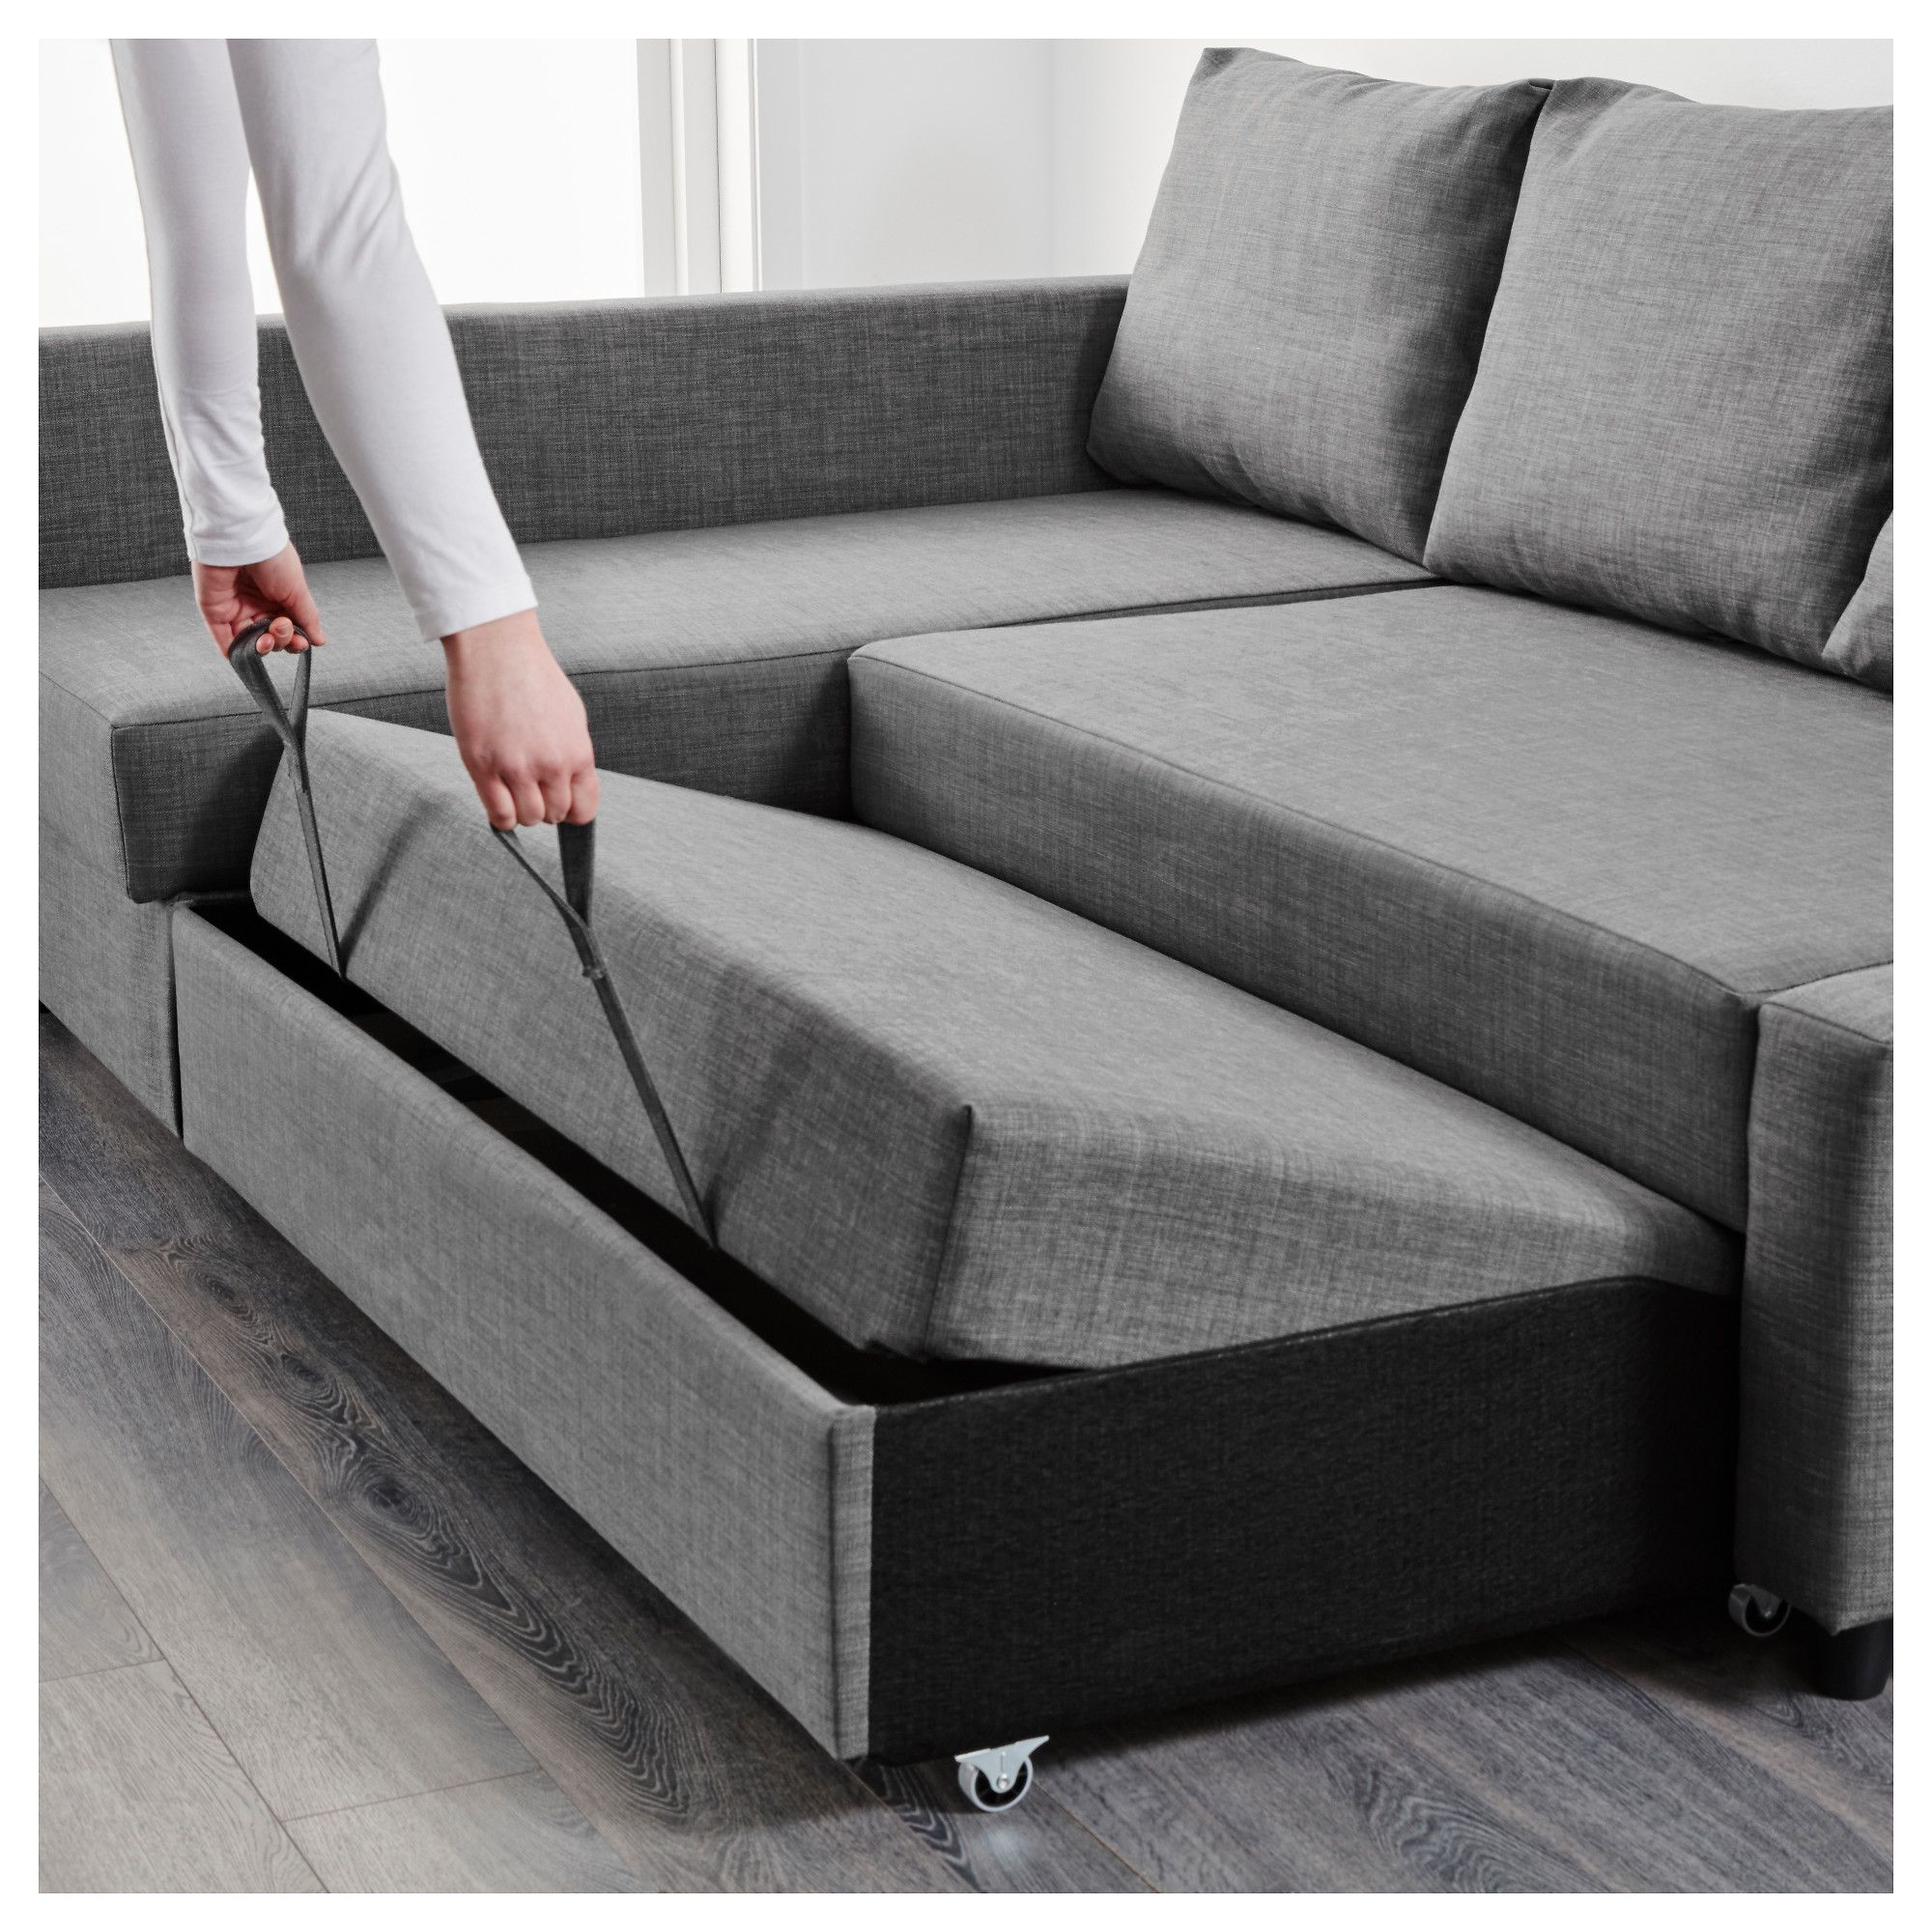 IKEA FRIHETEN Corner sofa-bed with storage Skiftebo dark grey This sofa  converts quickly and easily into a spacious bed when you remove the back  cushions.